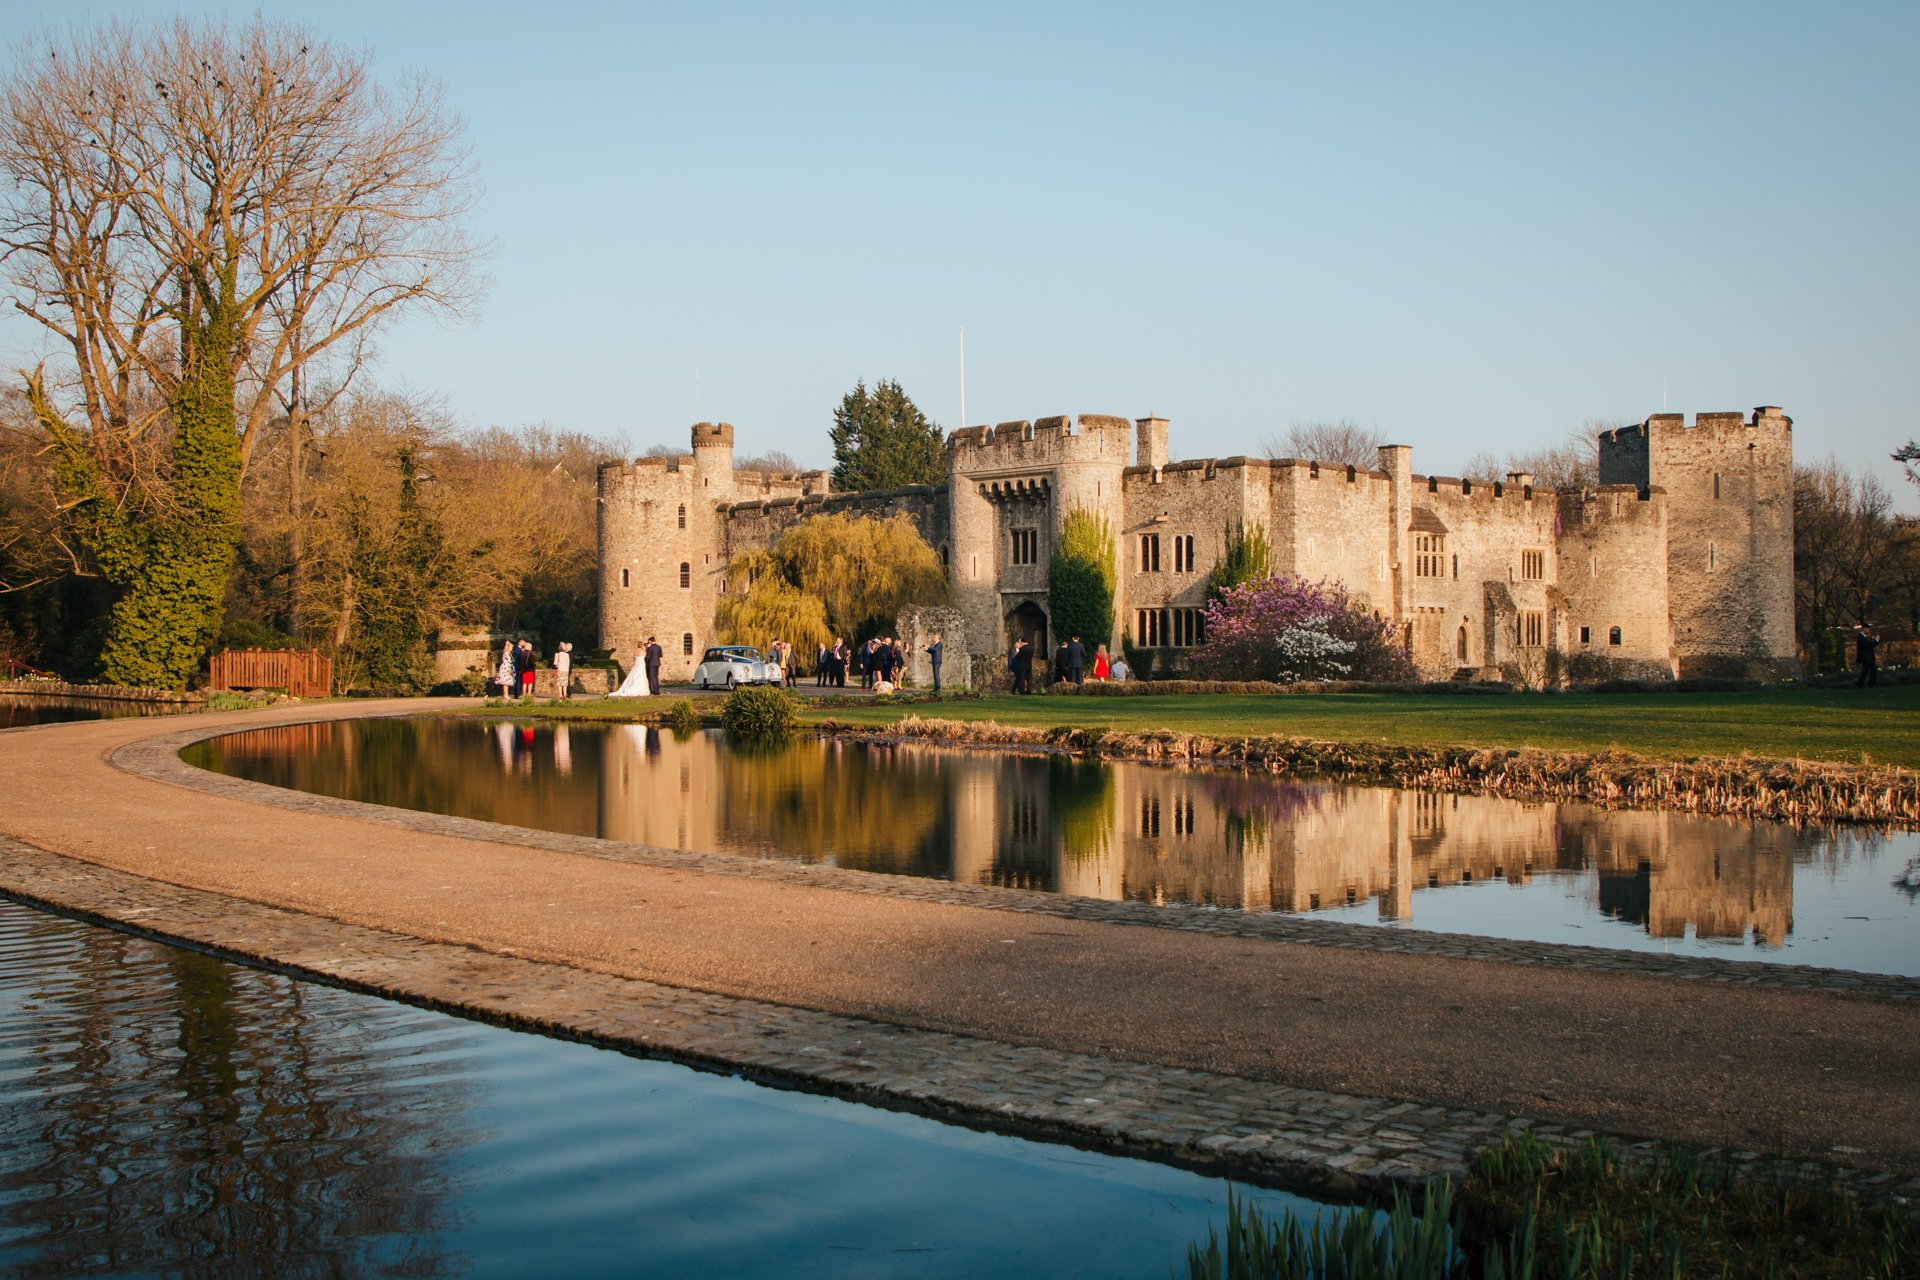 Allington Castle bathed in evening sun with wedding guests